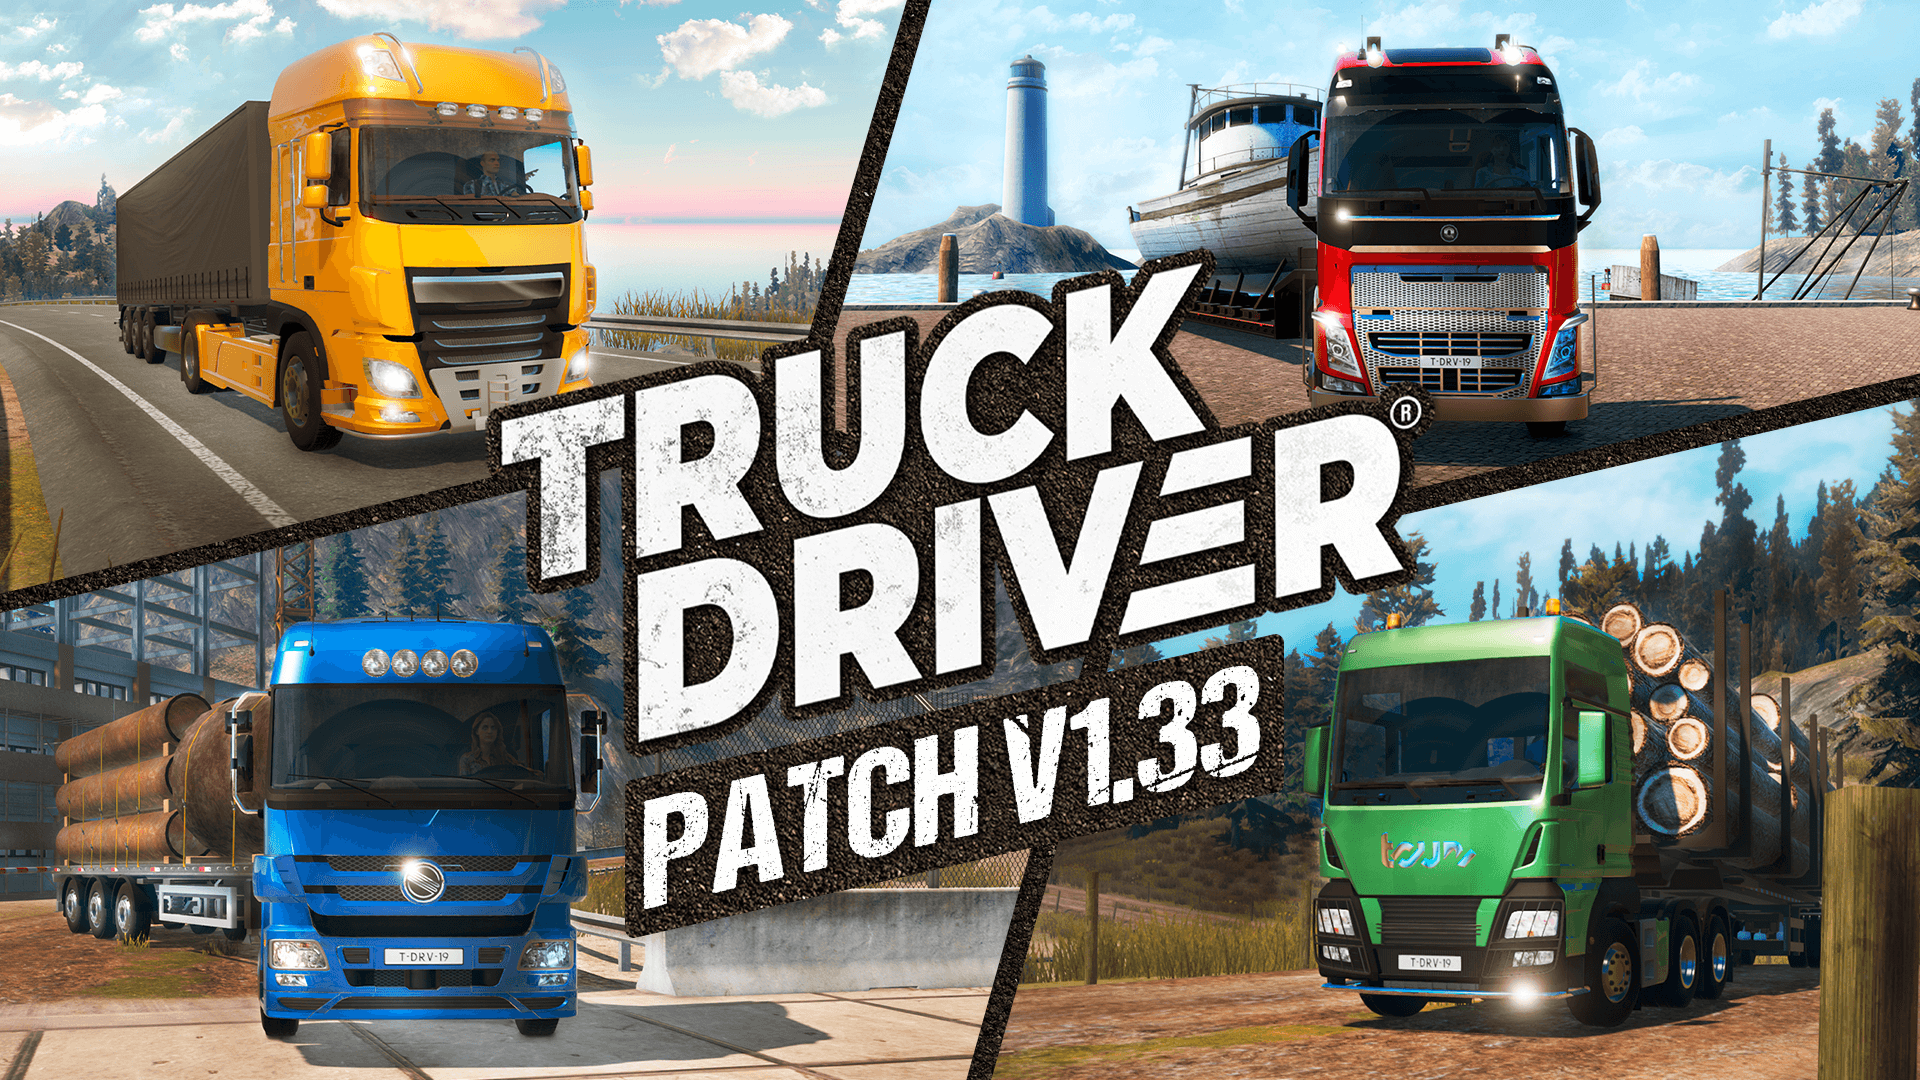 Truck Driver update v1.33 now live on Xbox One & PC